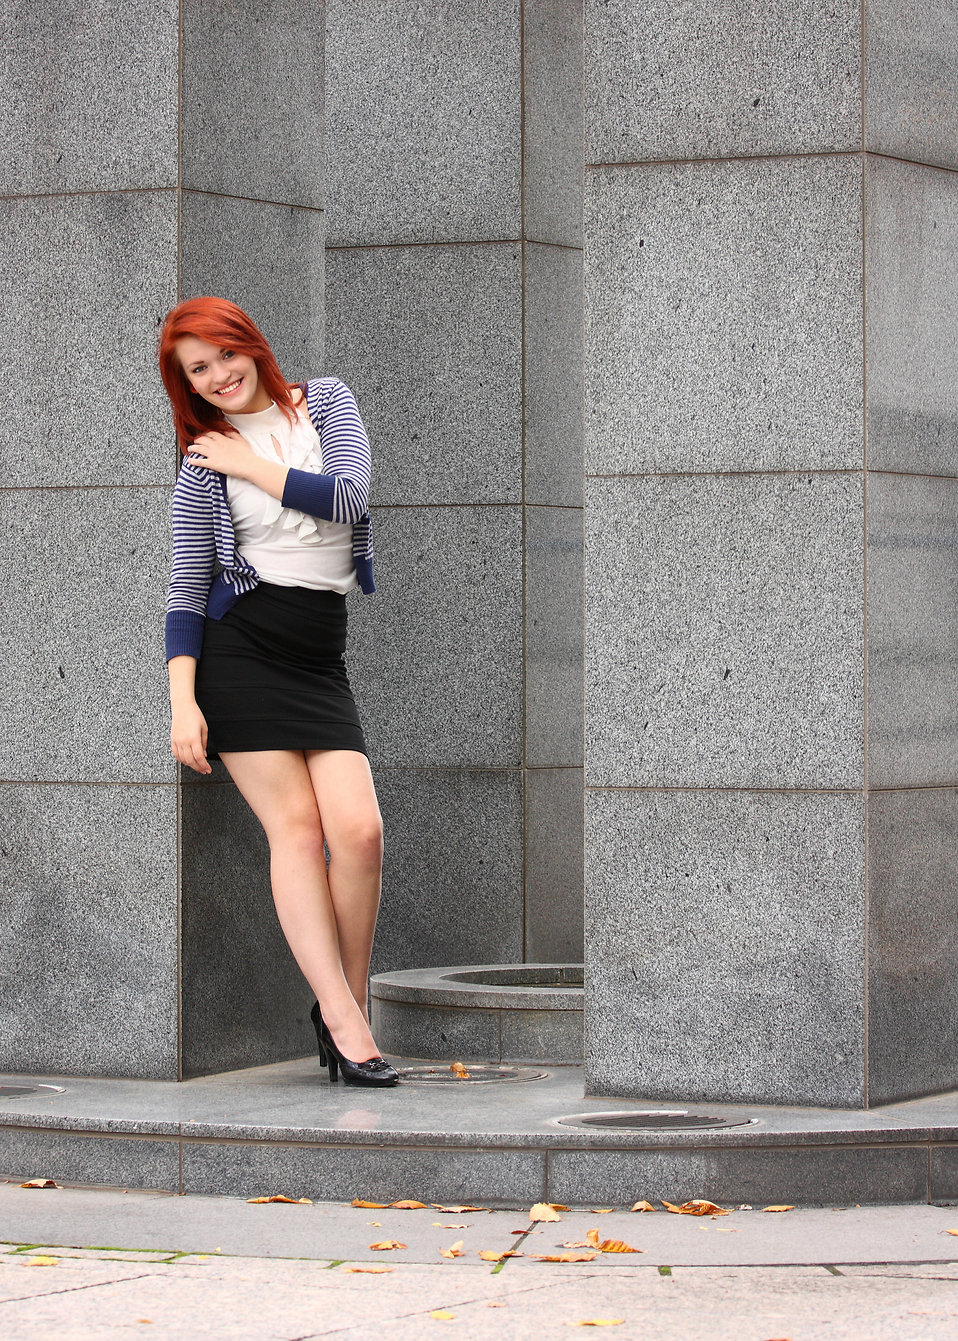 A beautiful young woman dressed in business attire posing near a building.